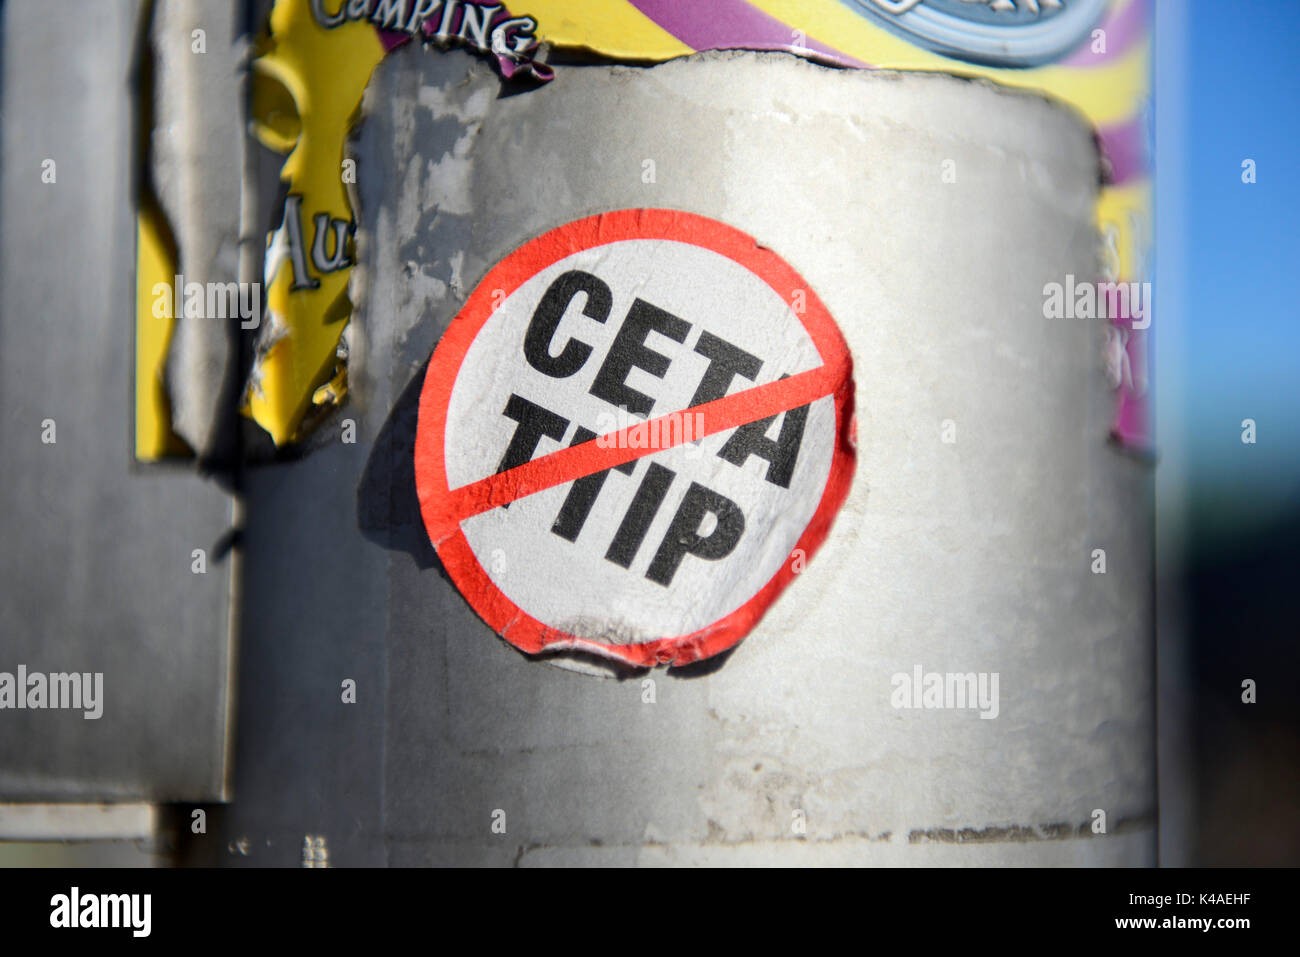 Protest Sticker Against Ceta And Ttip Free Trade Agreements